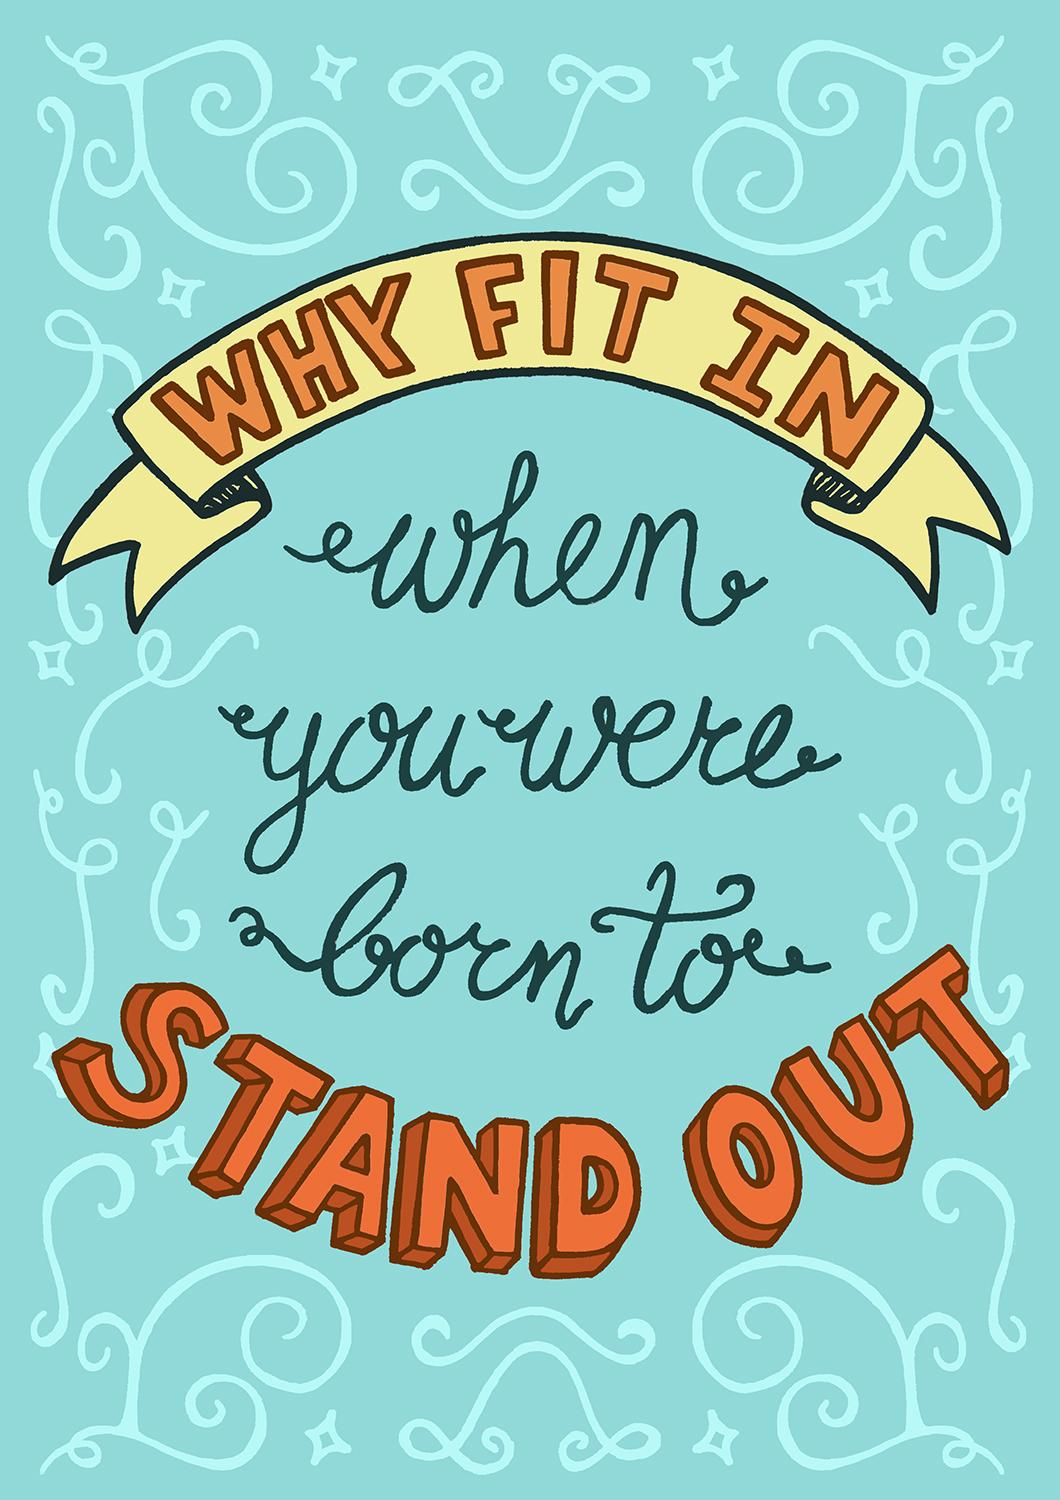 Why fit in you were born to stand out clipart clipart transparent library Why fit in when you were born to stand out   Skillshare Projects clipart transparent library